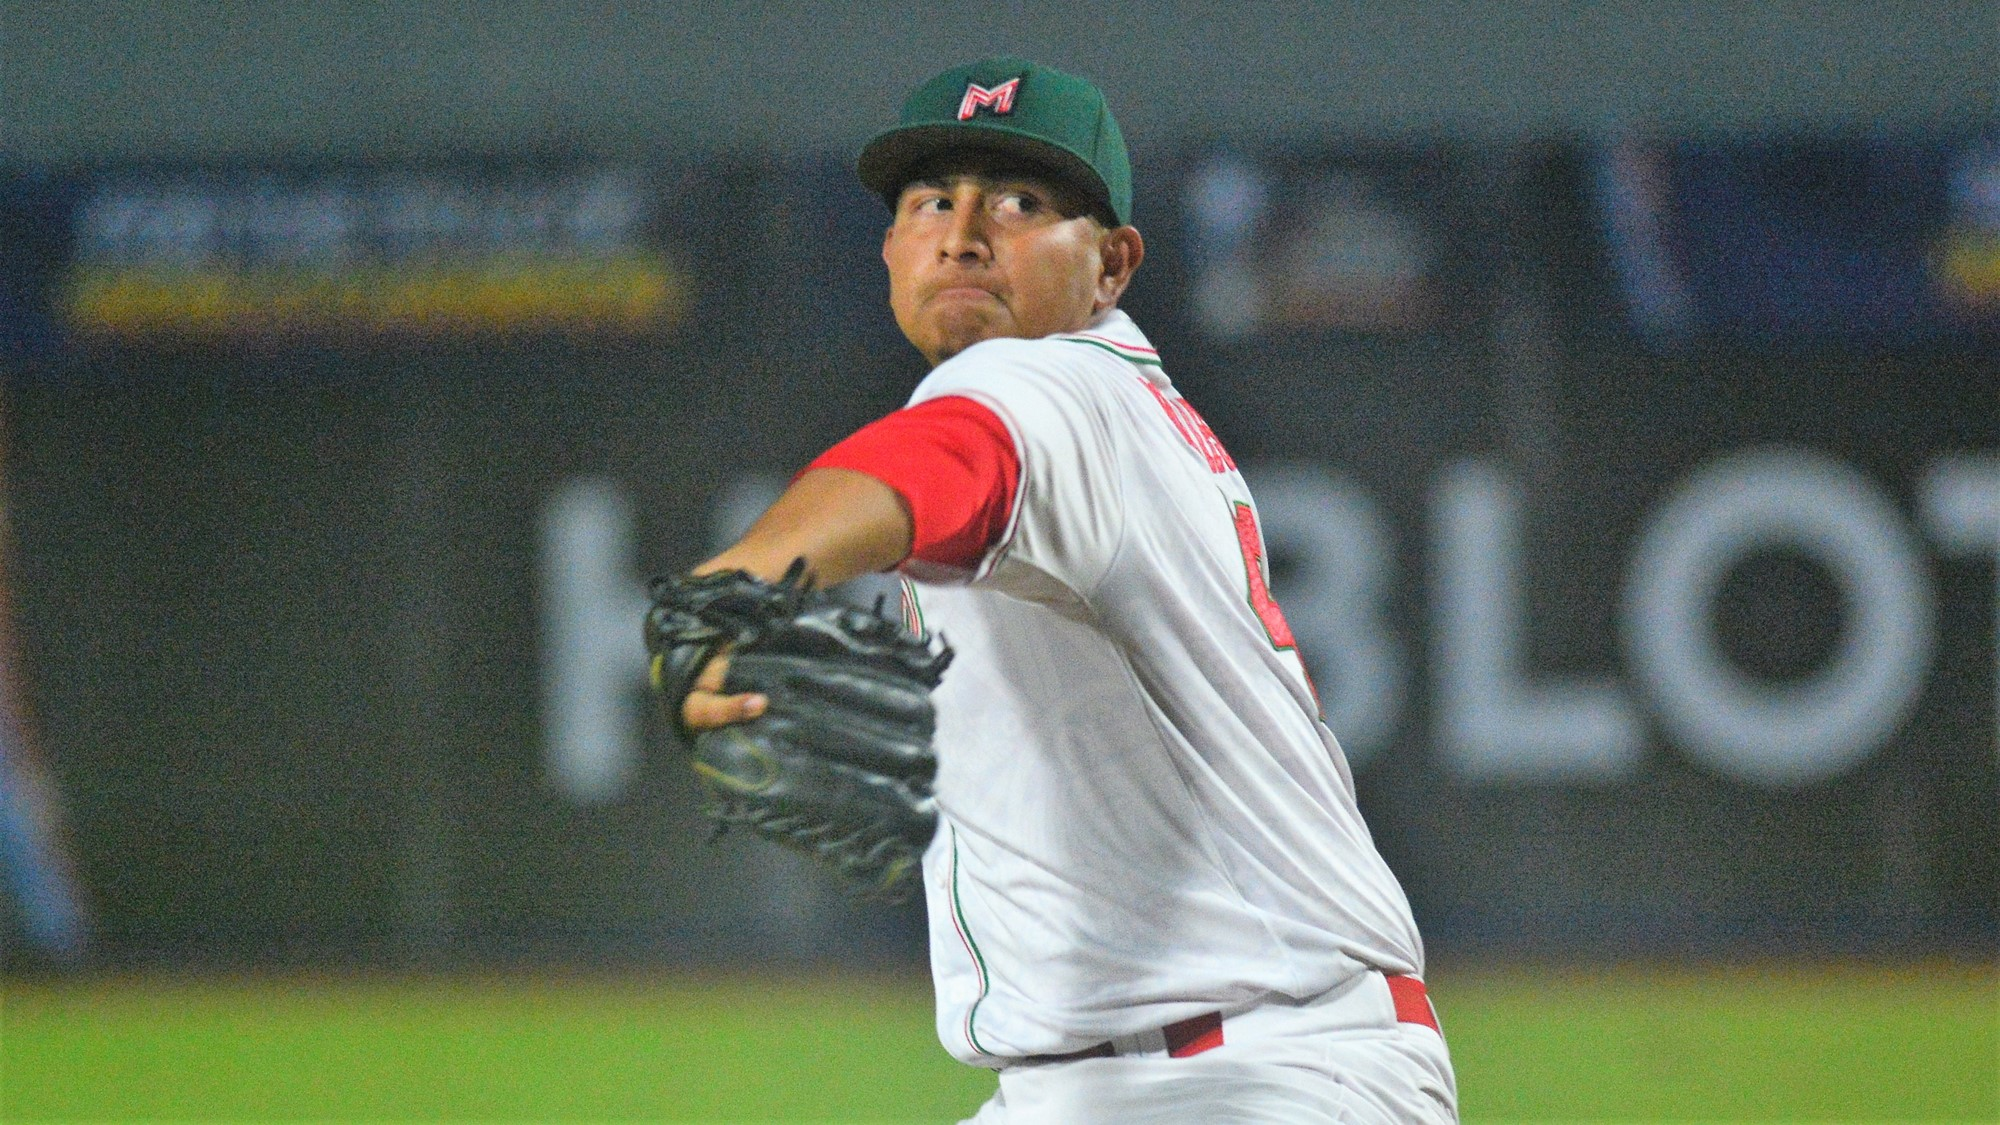 Mexico's starter Carlos Morales gave up a second pitch extra base hit, then cruised through the first 5 innings